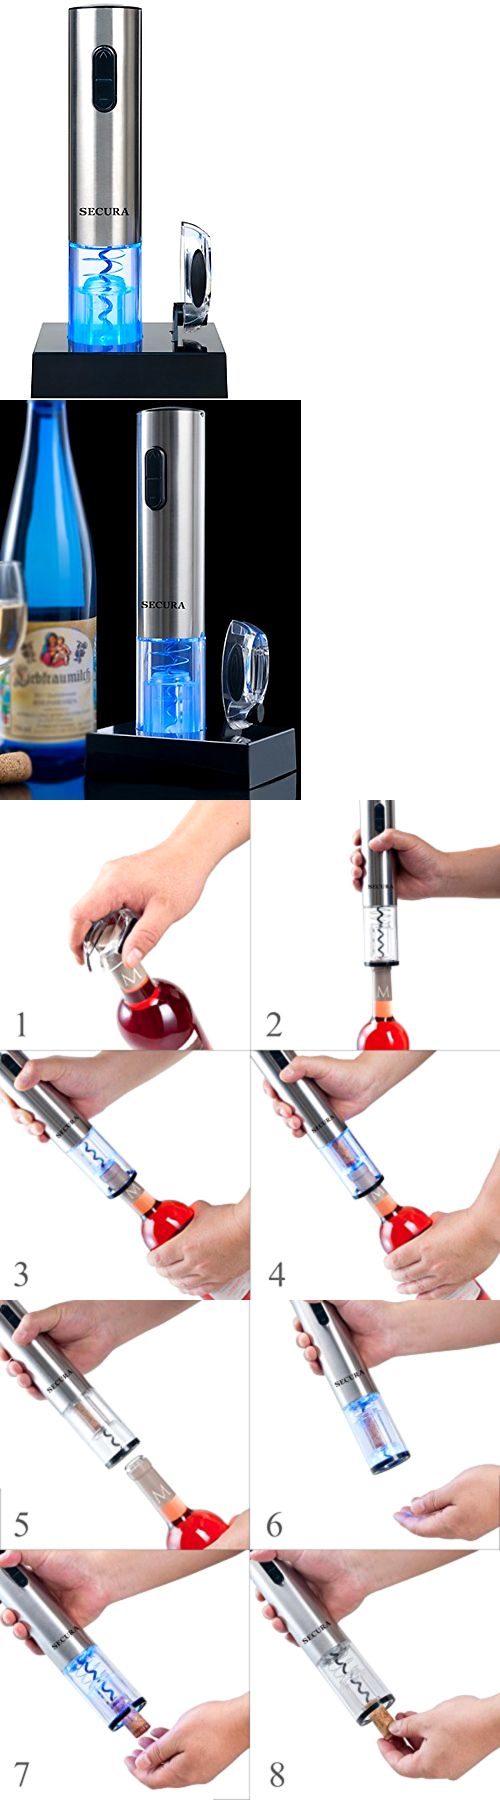 Corkscrews and Openers 20688: Secura Stainless Steel Electric Wine Bottle Opener With Foil Cutter, New -> BUY IT NOW ONLY: $30.74 on eBay!